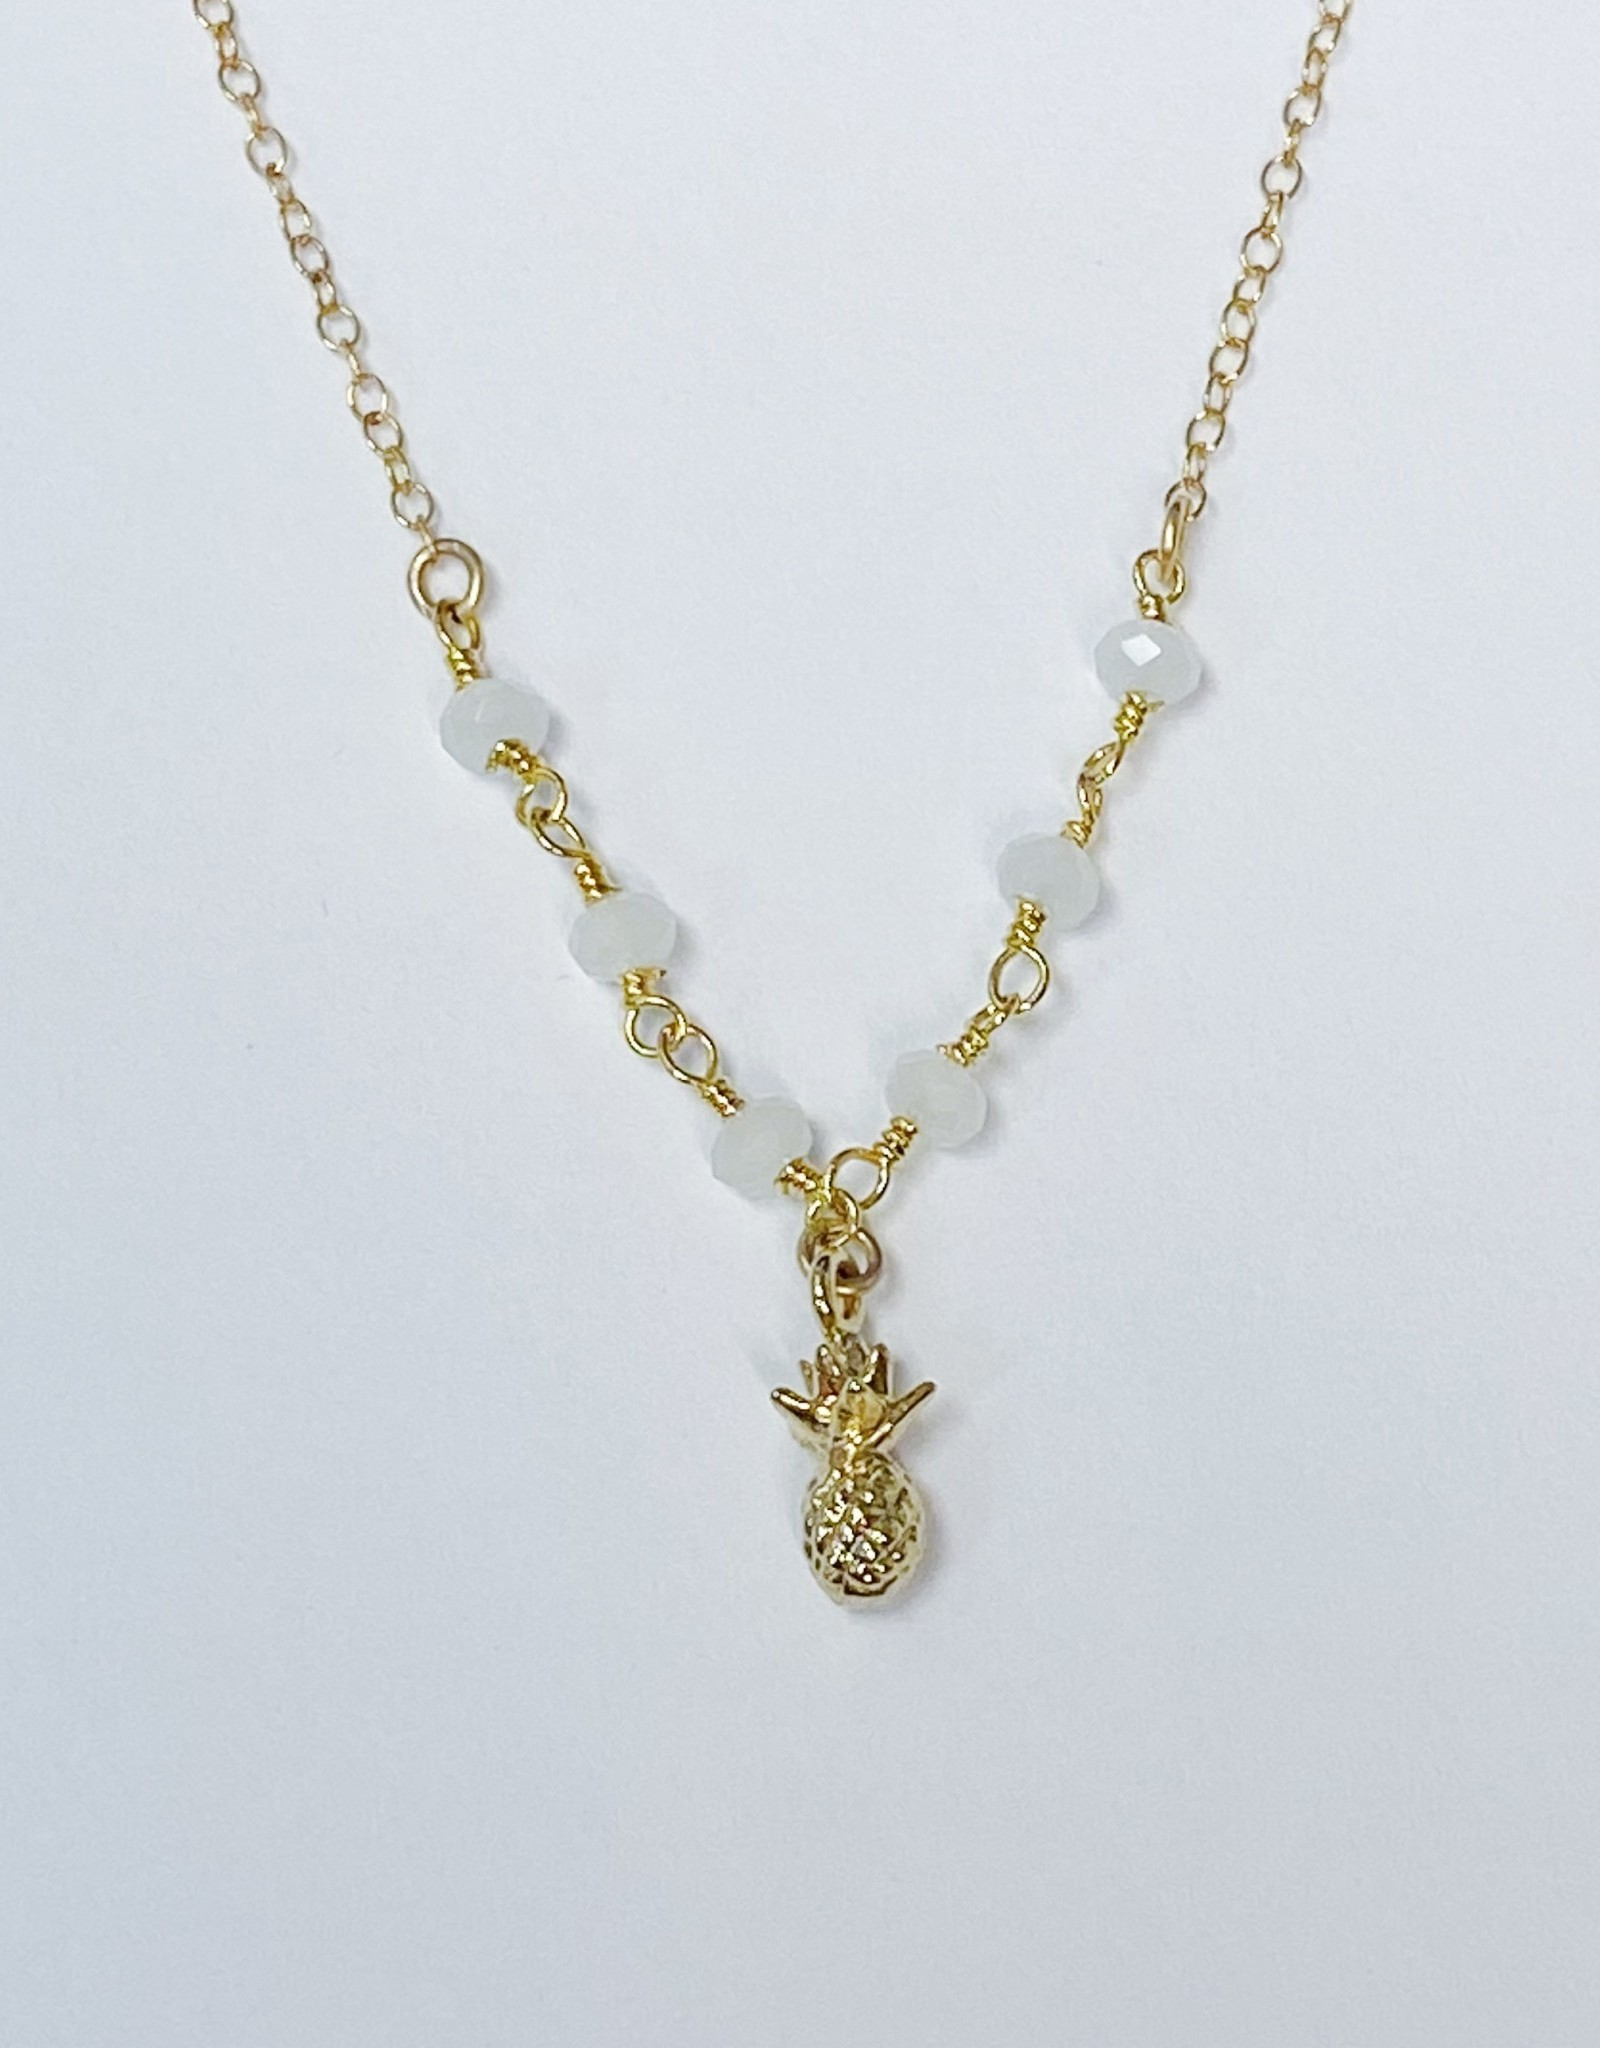 Komakai Jewelry Sydney Necklace - GF, White Chalcedony, 18k gold plated pineapple